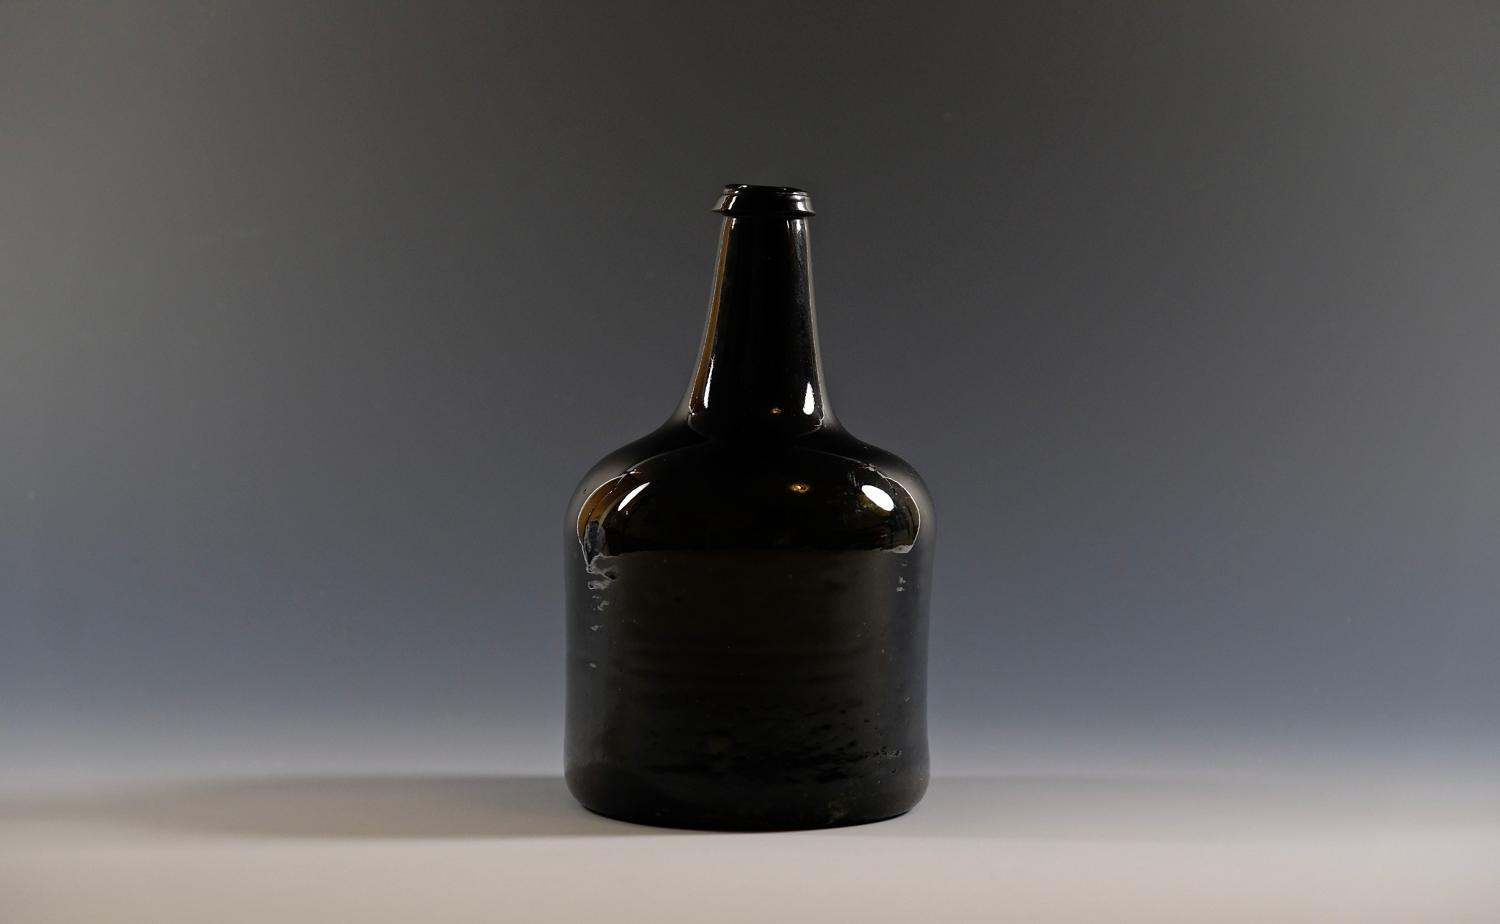 Mallet wine bottle English C1750